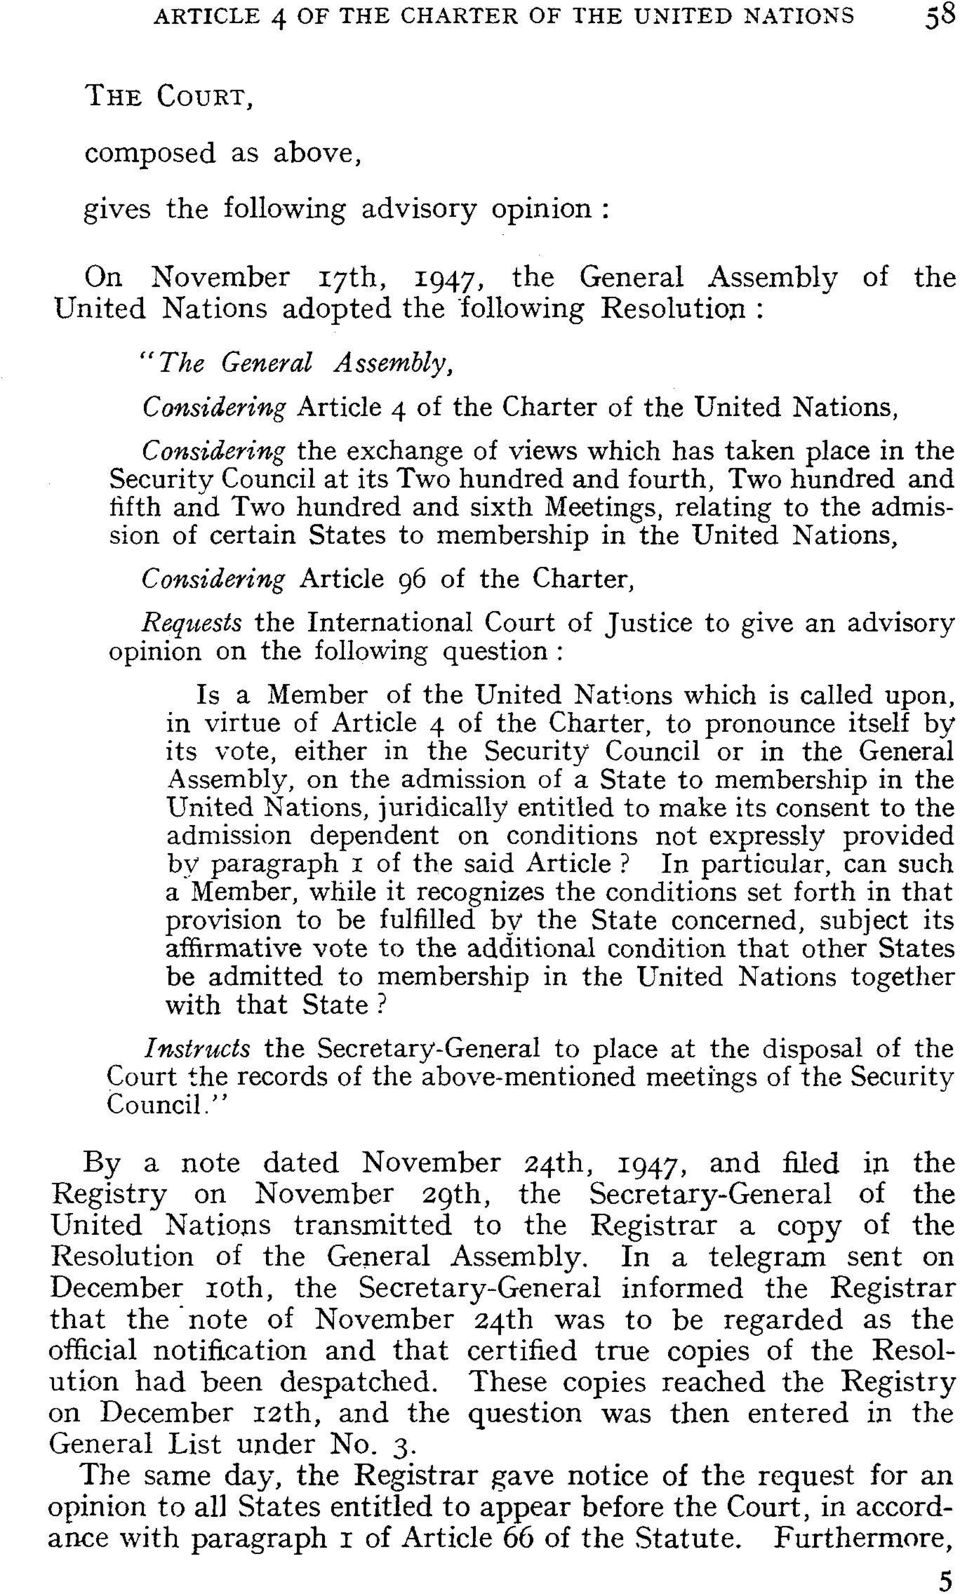 and sixth Meetings, relating to the admission of certain States to membership in the United Nations, Consideriag Article 96 of the Charter, Requests the International Court of Justice to give an